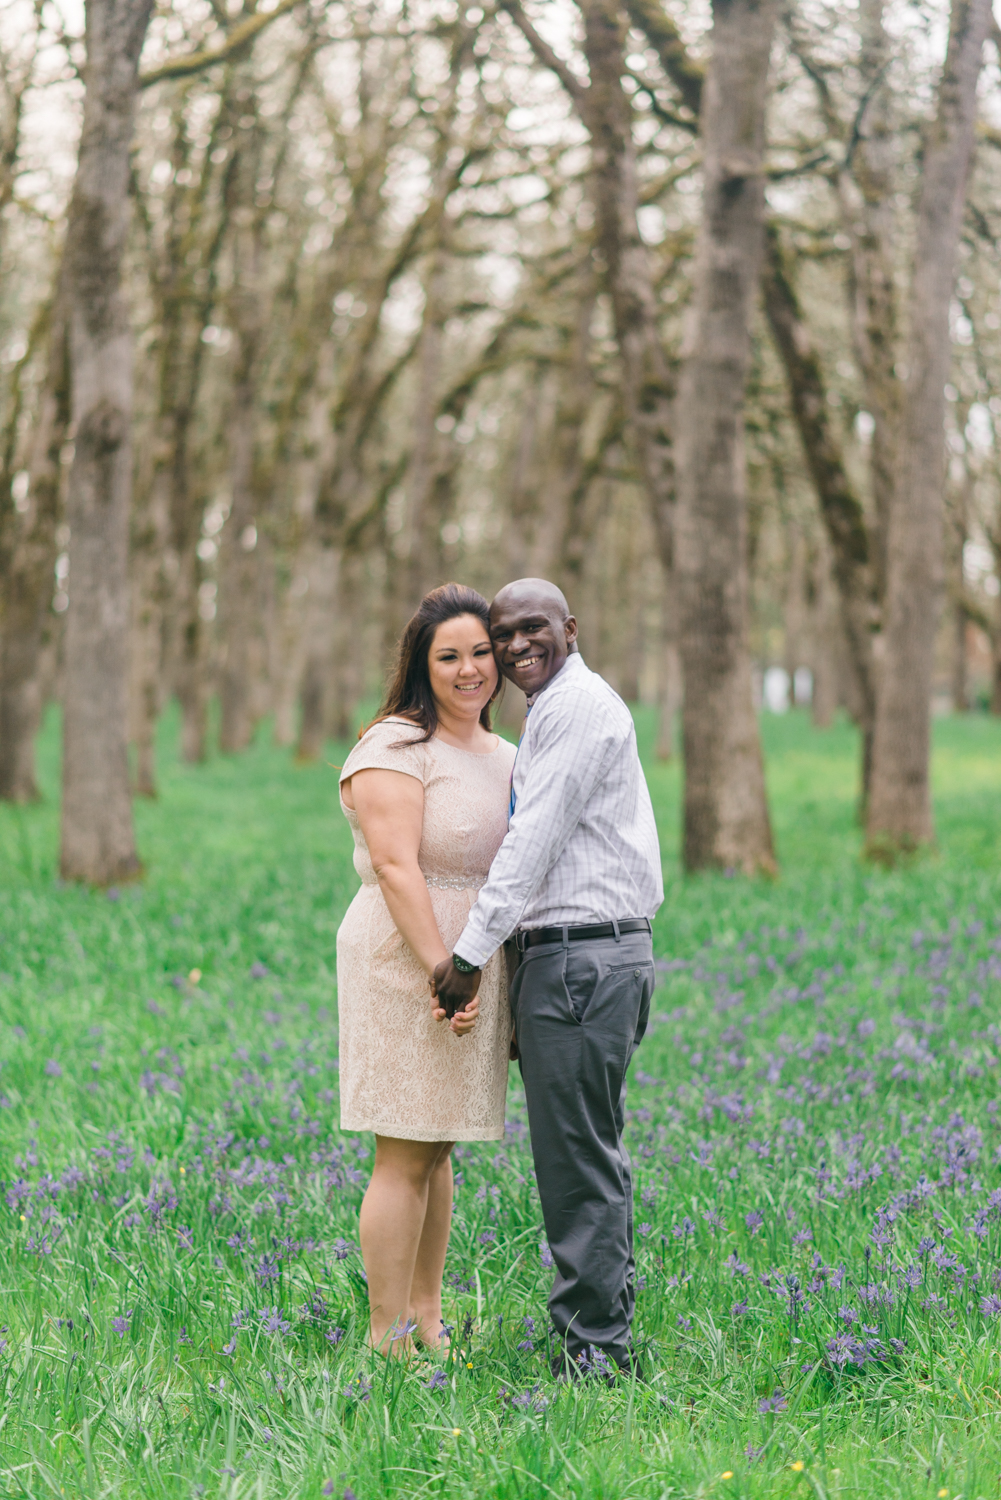 romantic-salem-engagement-photos-bush-park-shelley-marie-photo-25